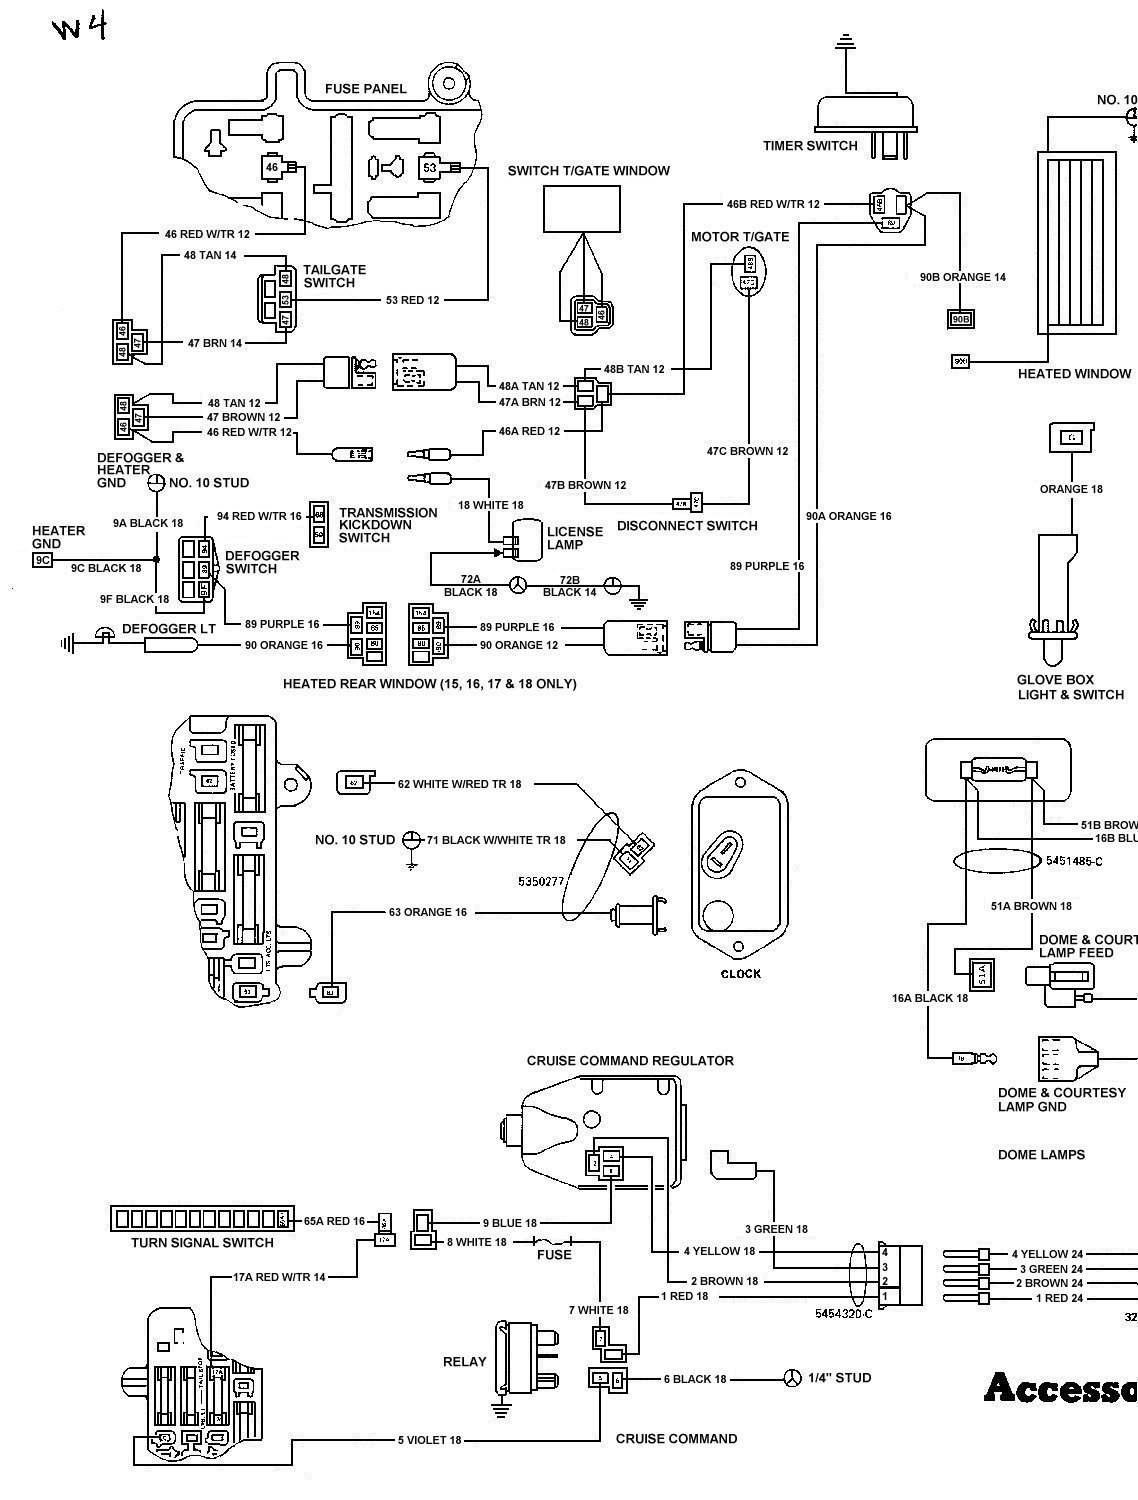 jeep cj7 ignition wiring diagram - 1996 grand cherokee rear light wiring  diagram - jeep-wrangler.yenpancane.jeanjaures37.fr  wiring diagram resource